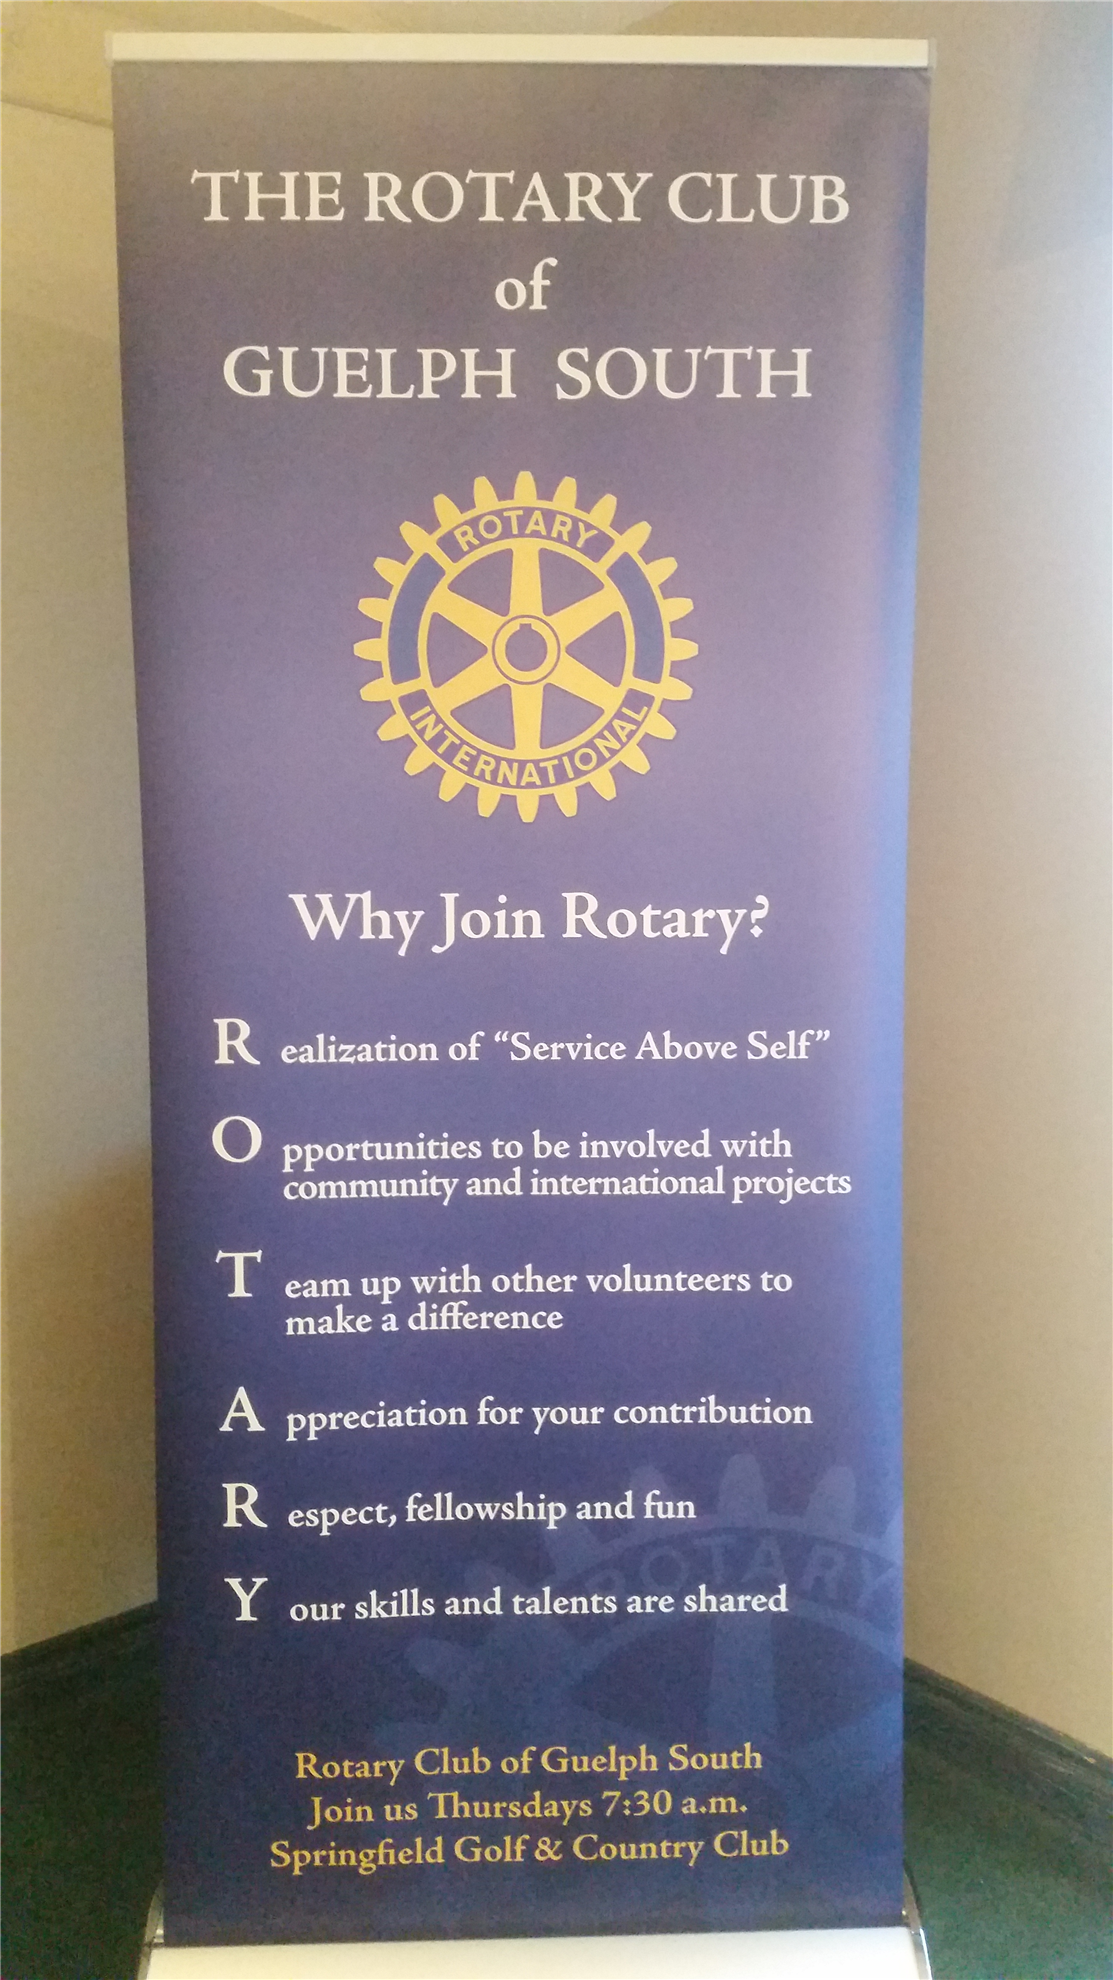 Rotary Club of Guelph South